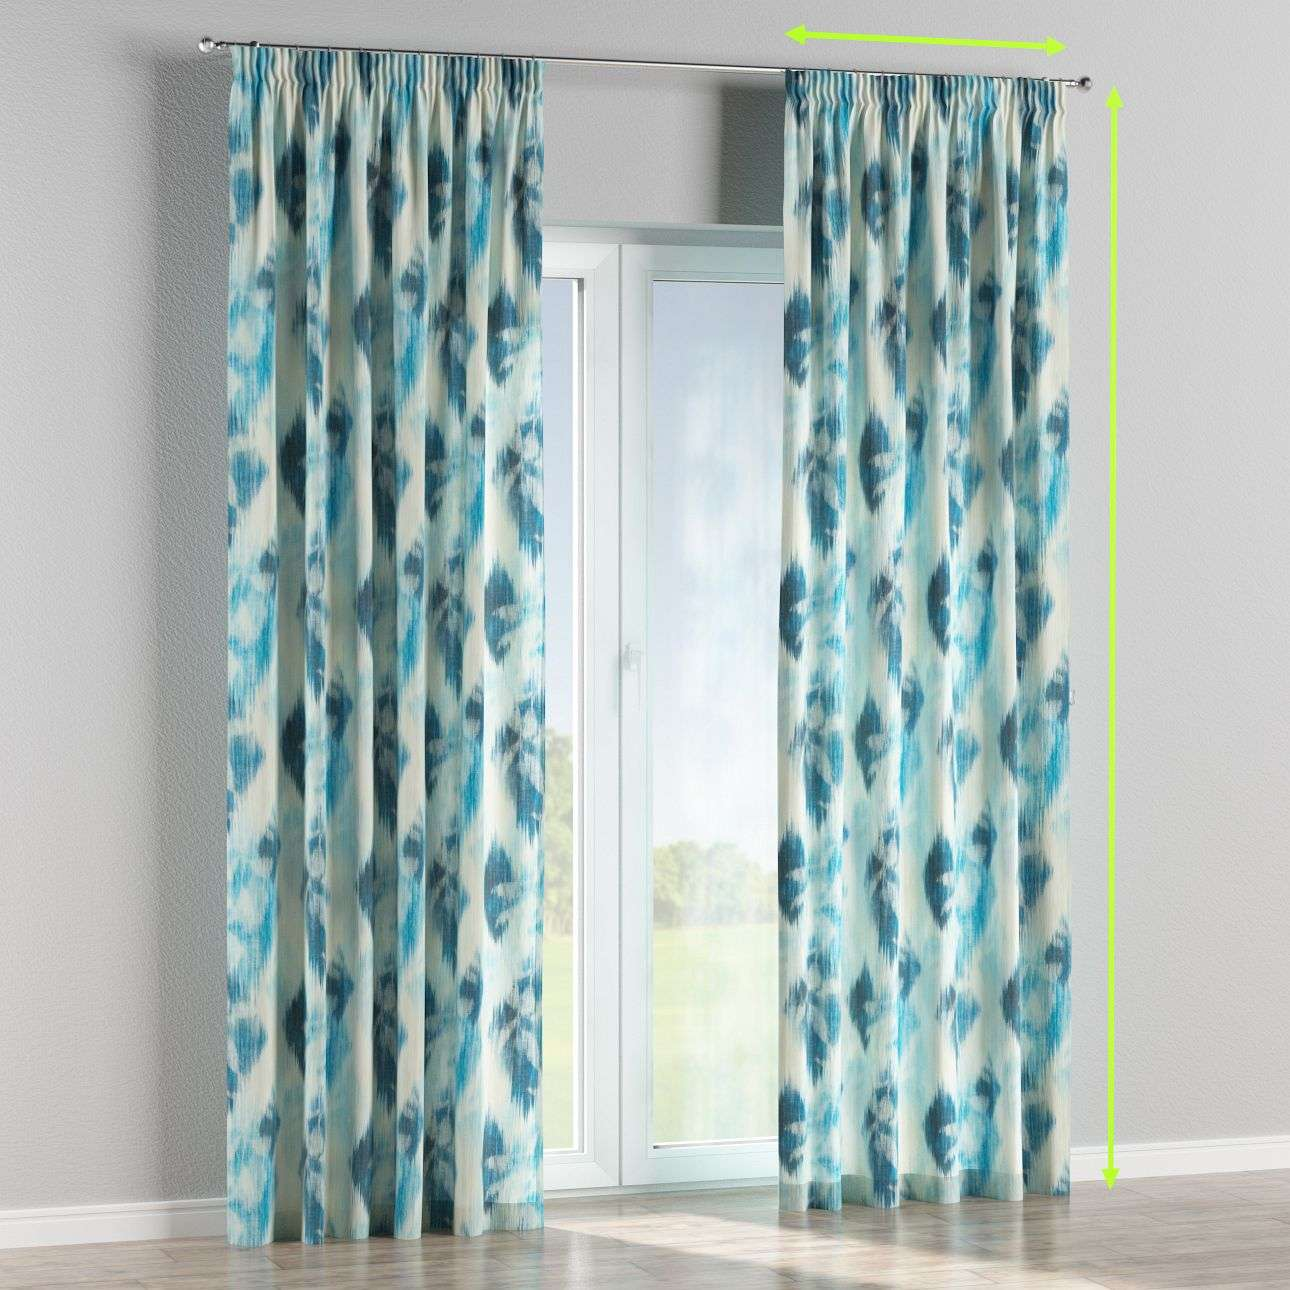 Pencil pleat curtains in collection Aquarelle, fabric: 140-71